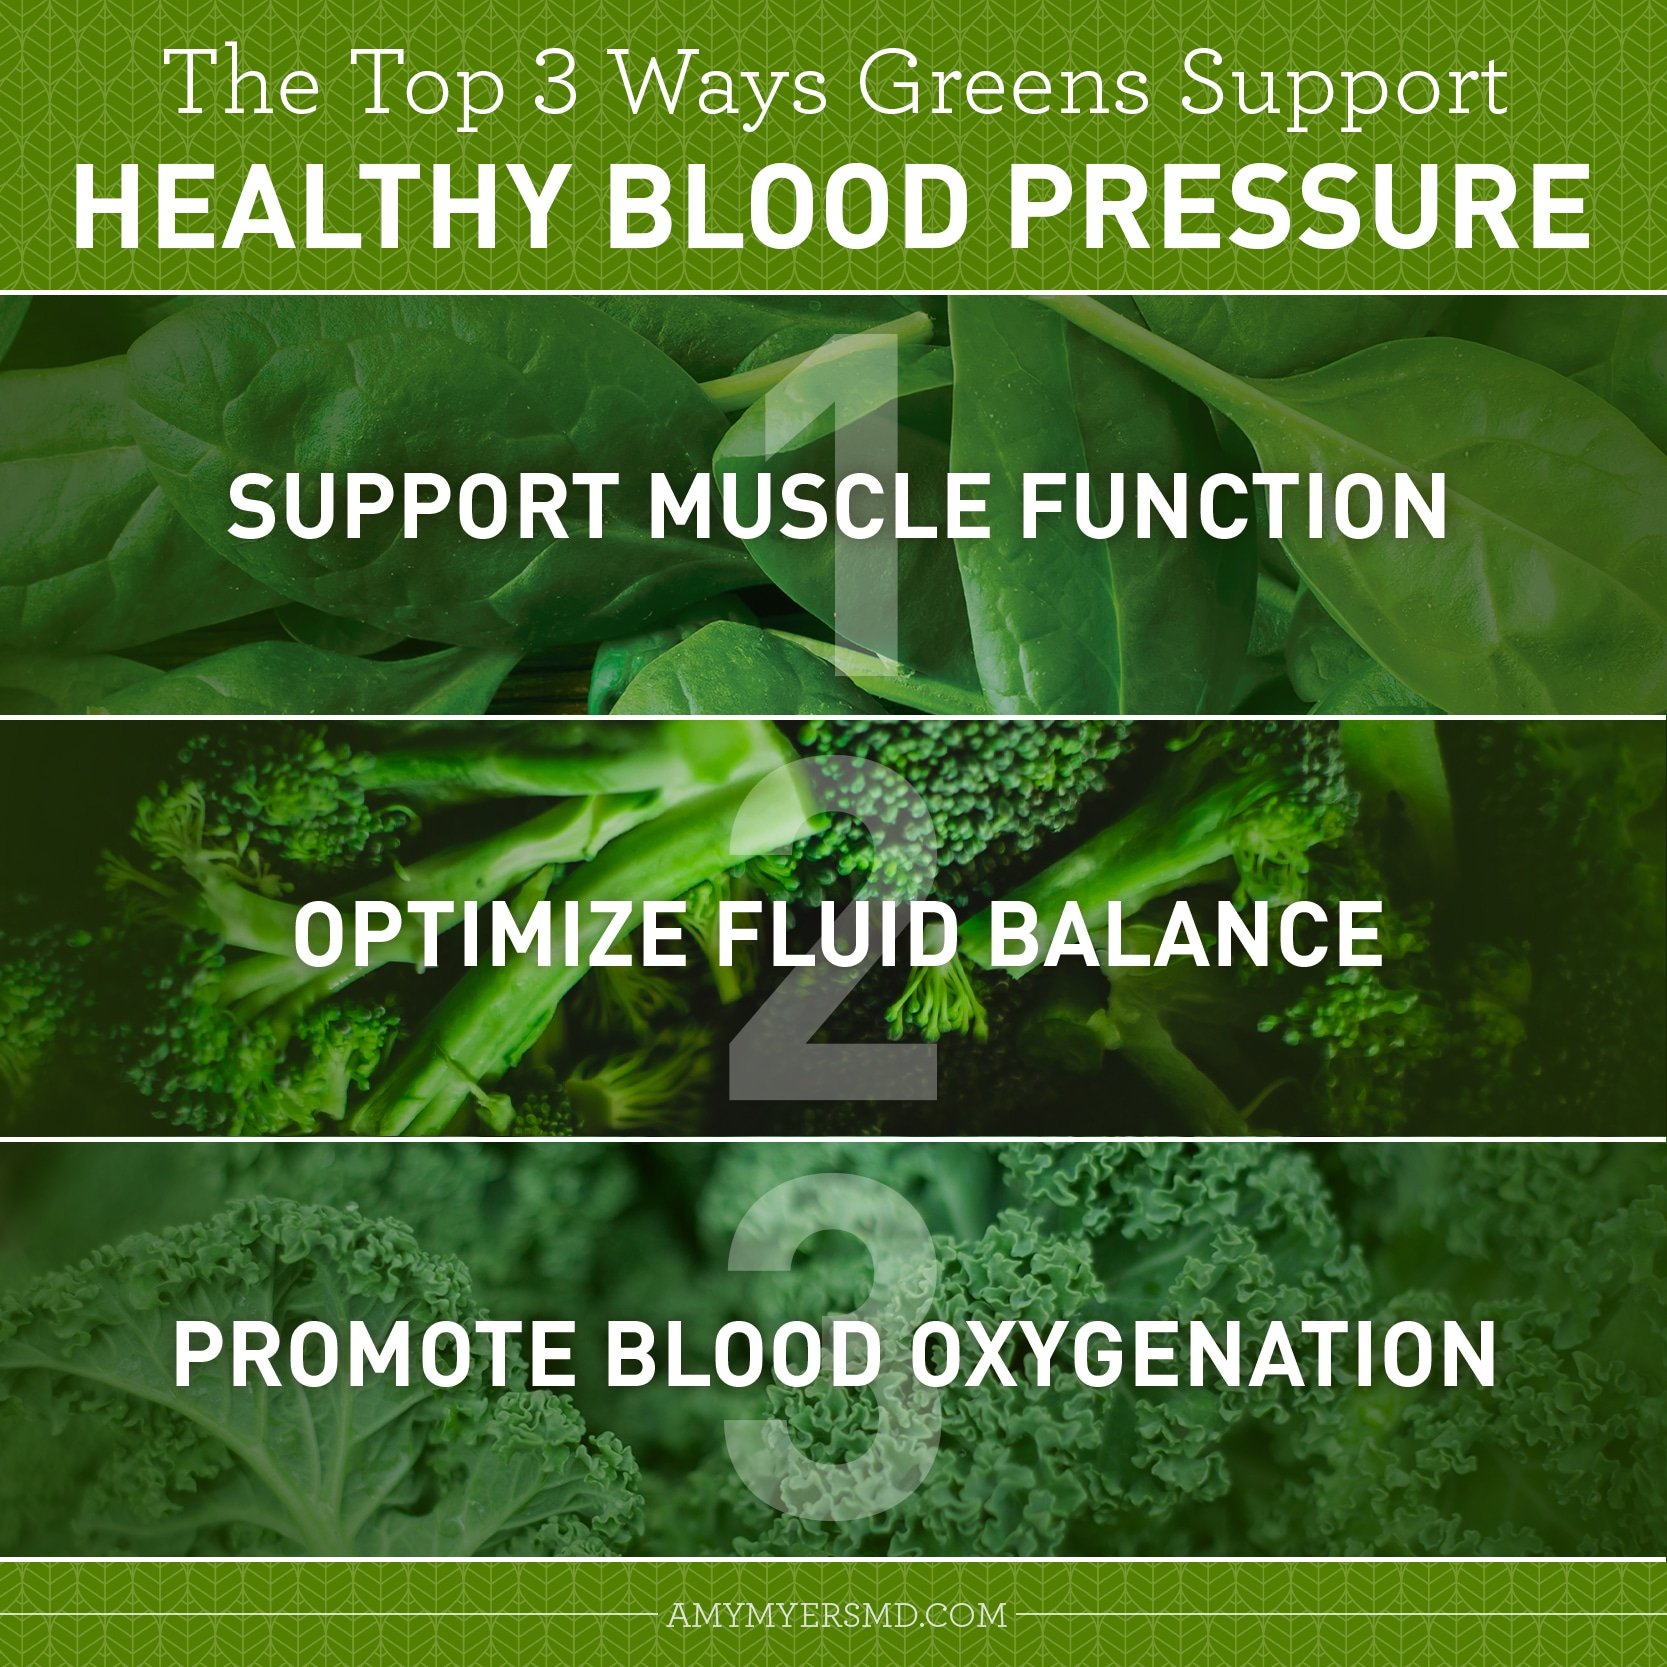 3 Ways Greens Support Healthy Blood Pressure - Infographic - Amy Myers MD